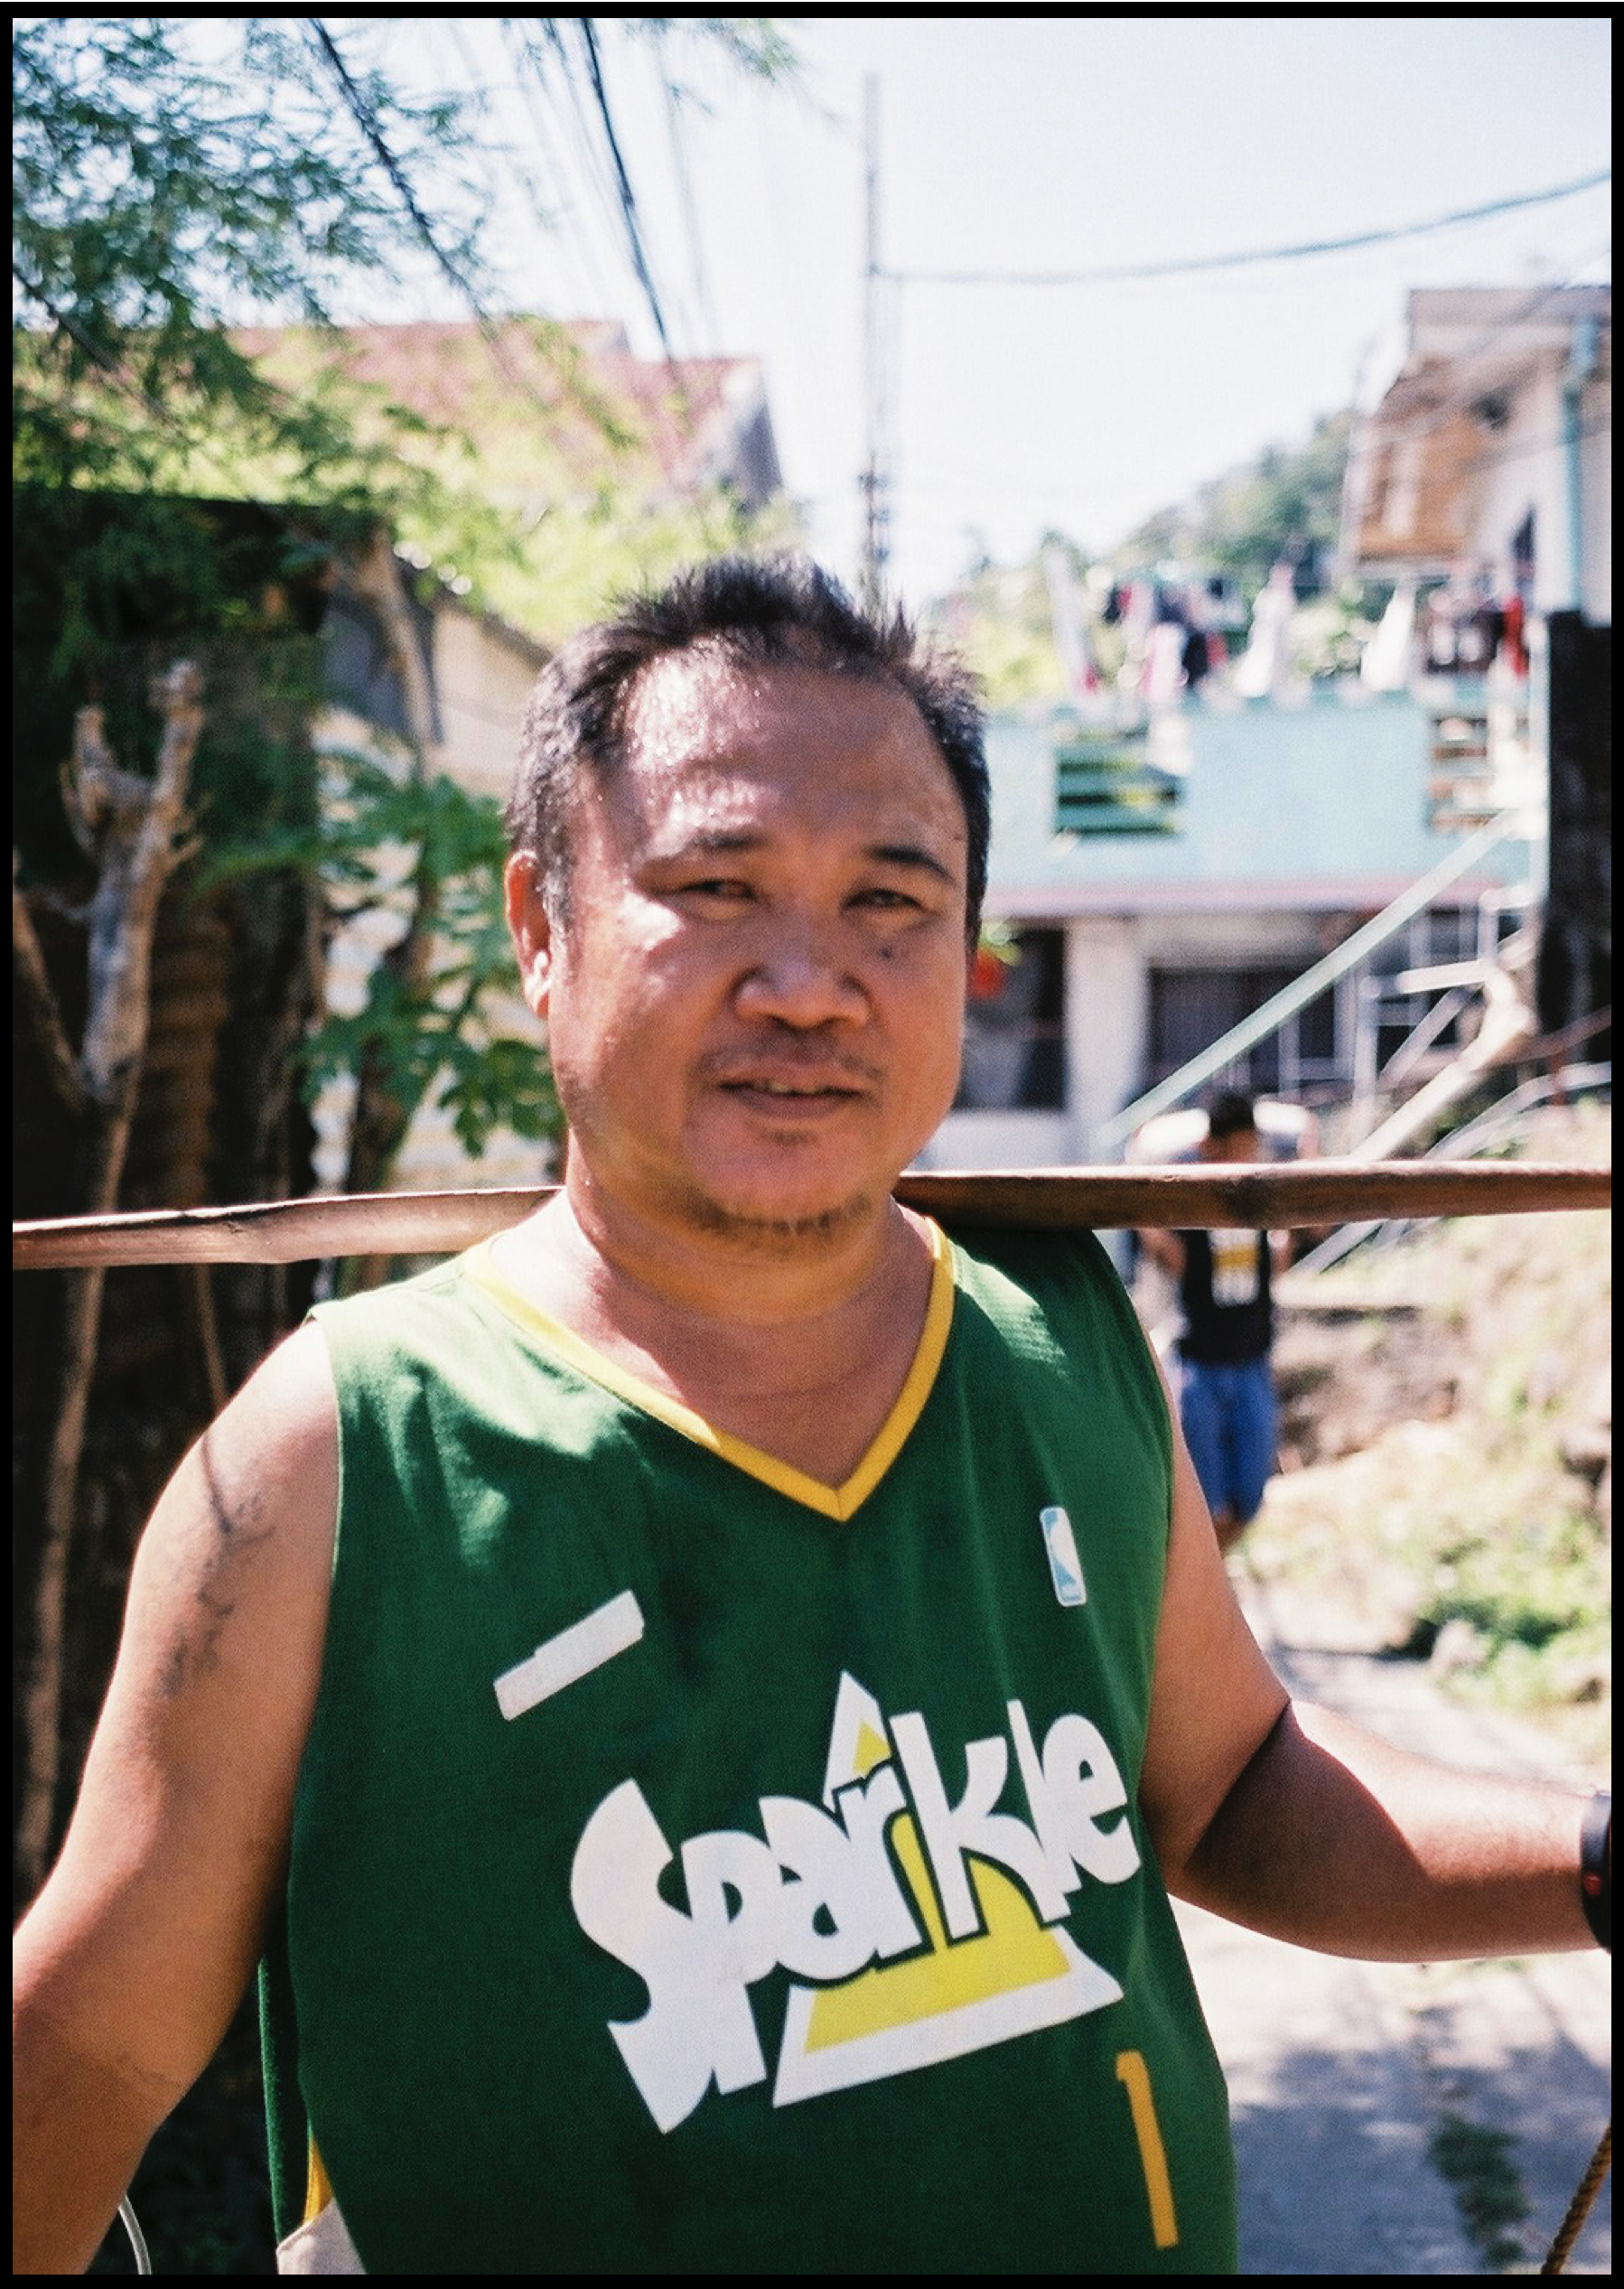 CoxCo_daily_life_Philippines 2019-08-04 14.16.48.png